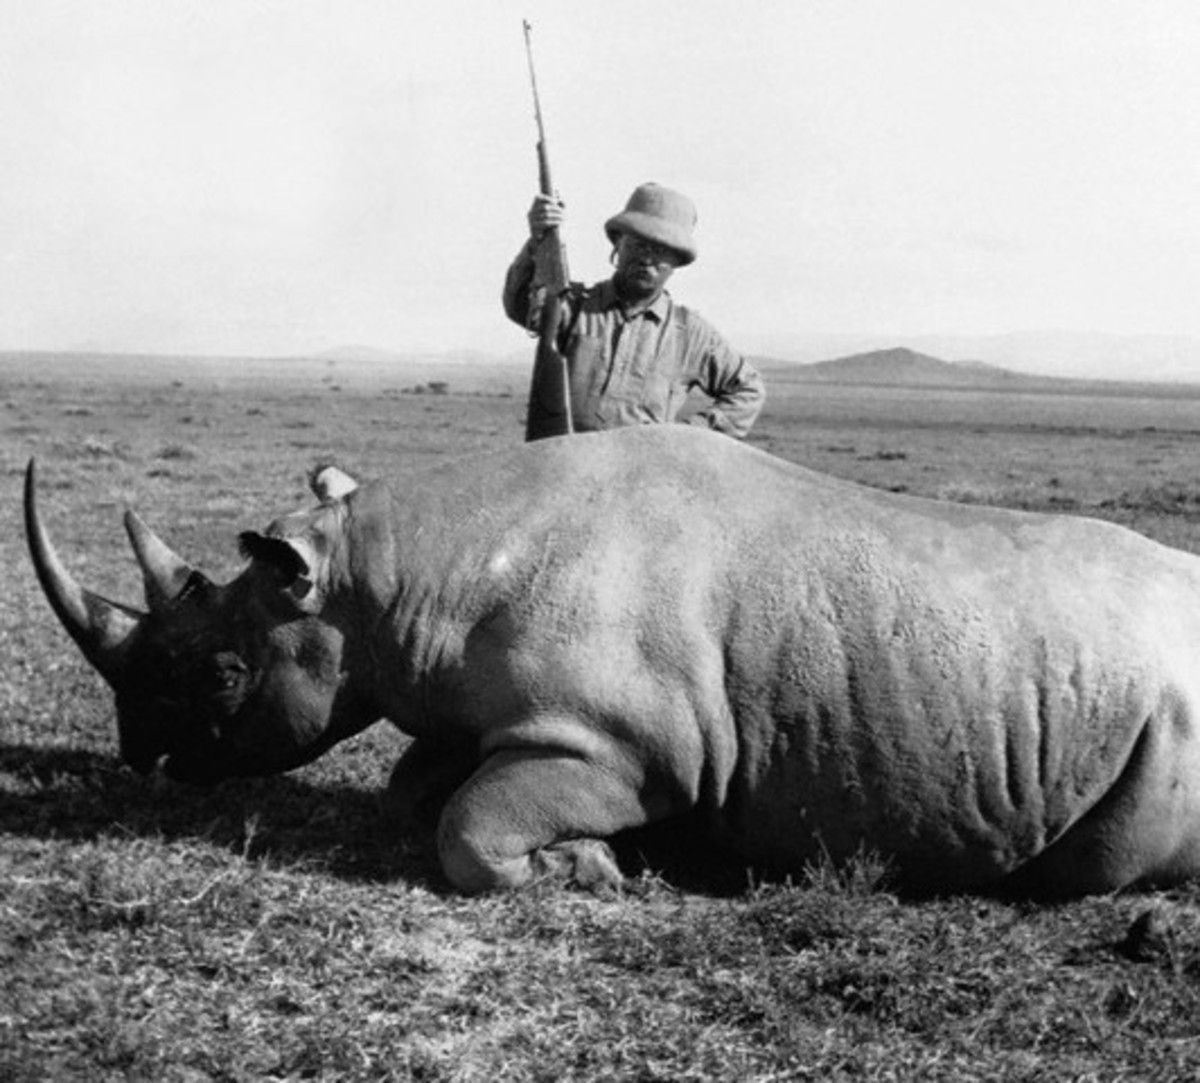 Name Your Girl Teddy for Big Game Hunter Teddy Roosevelt